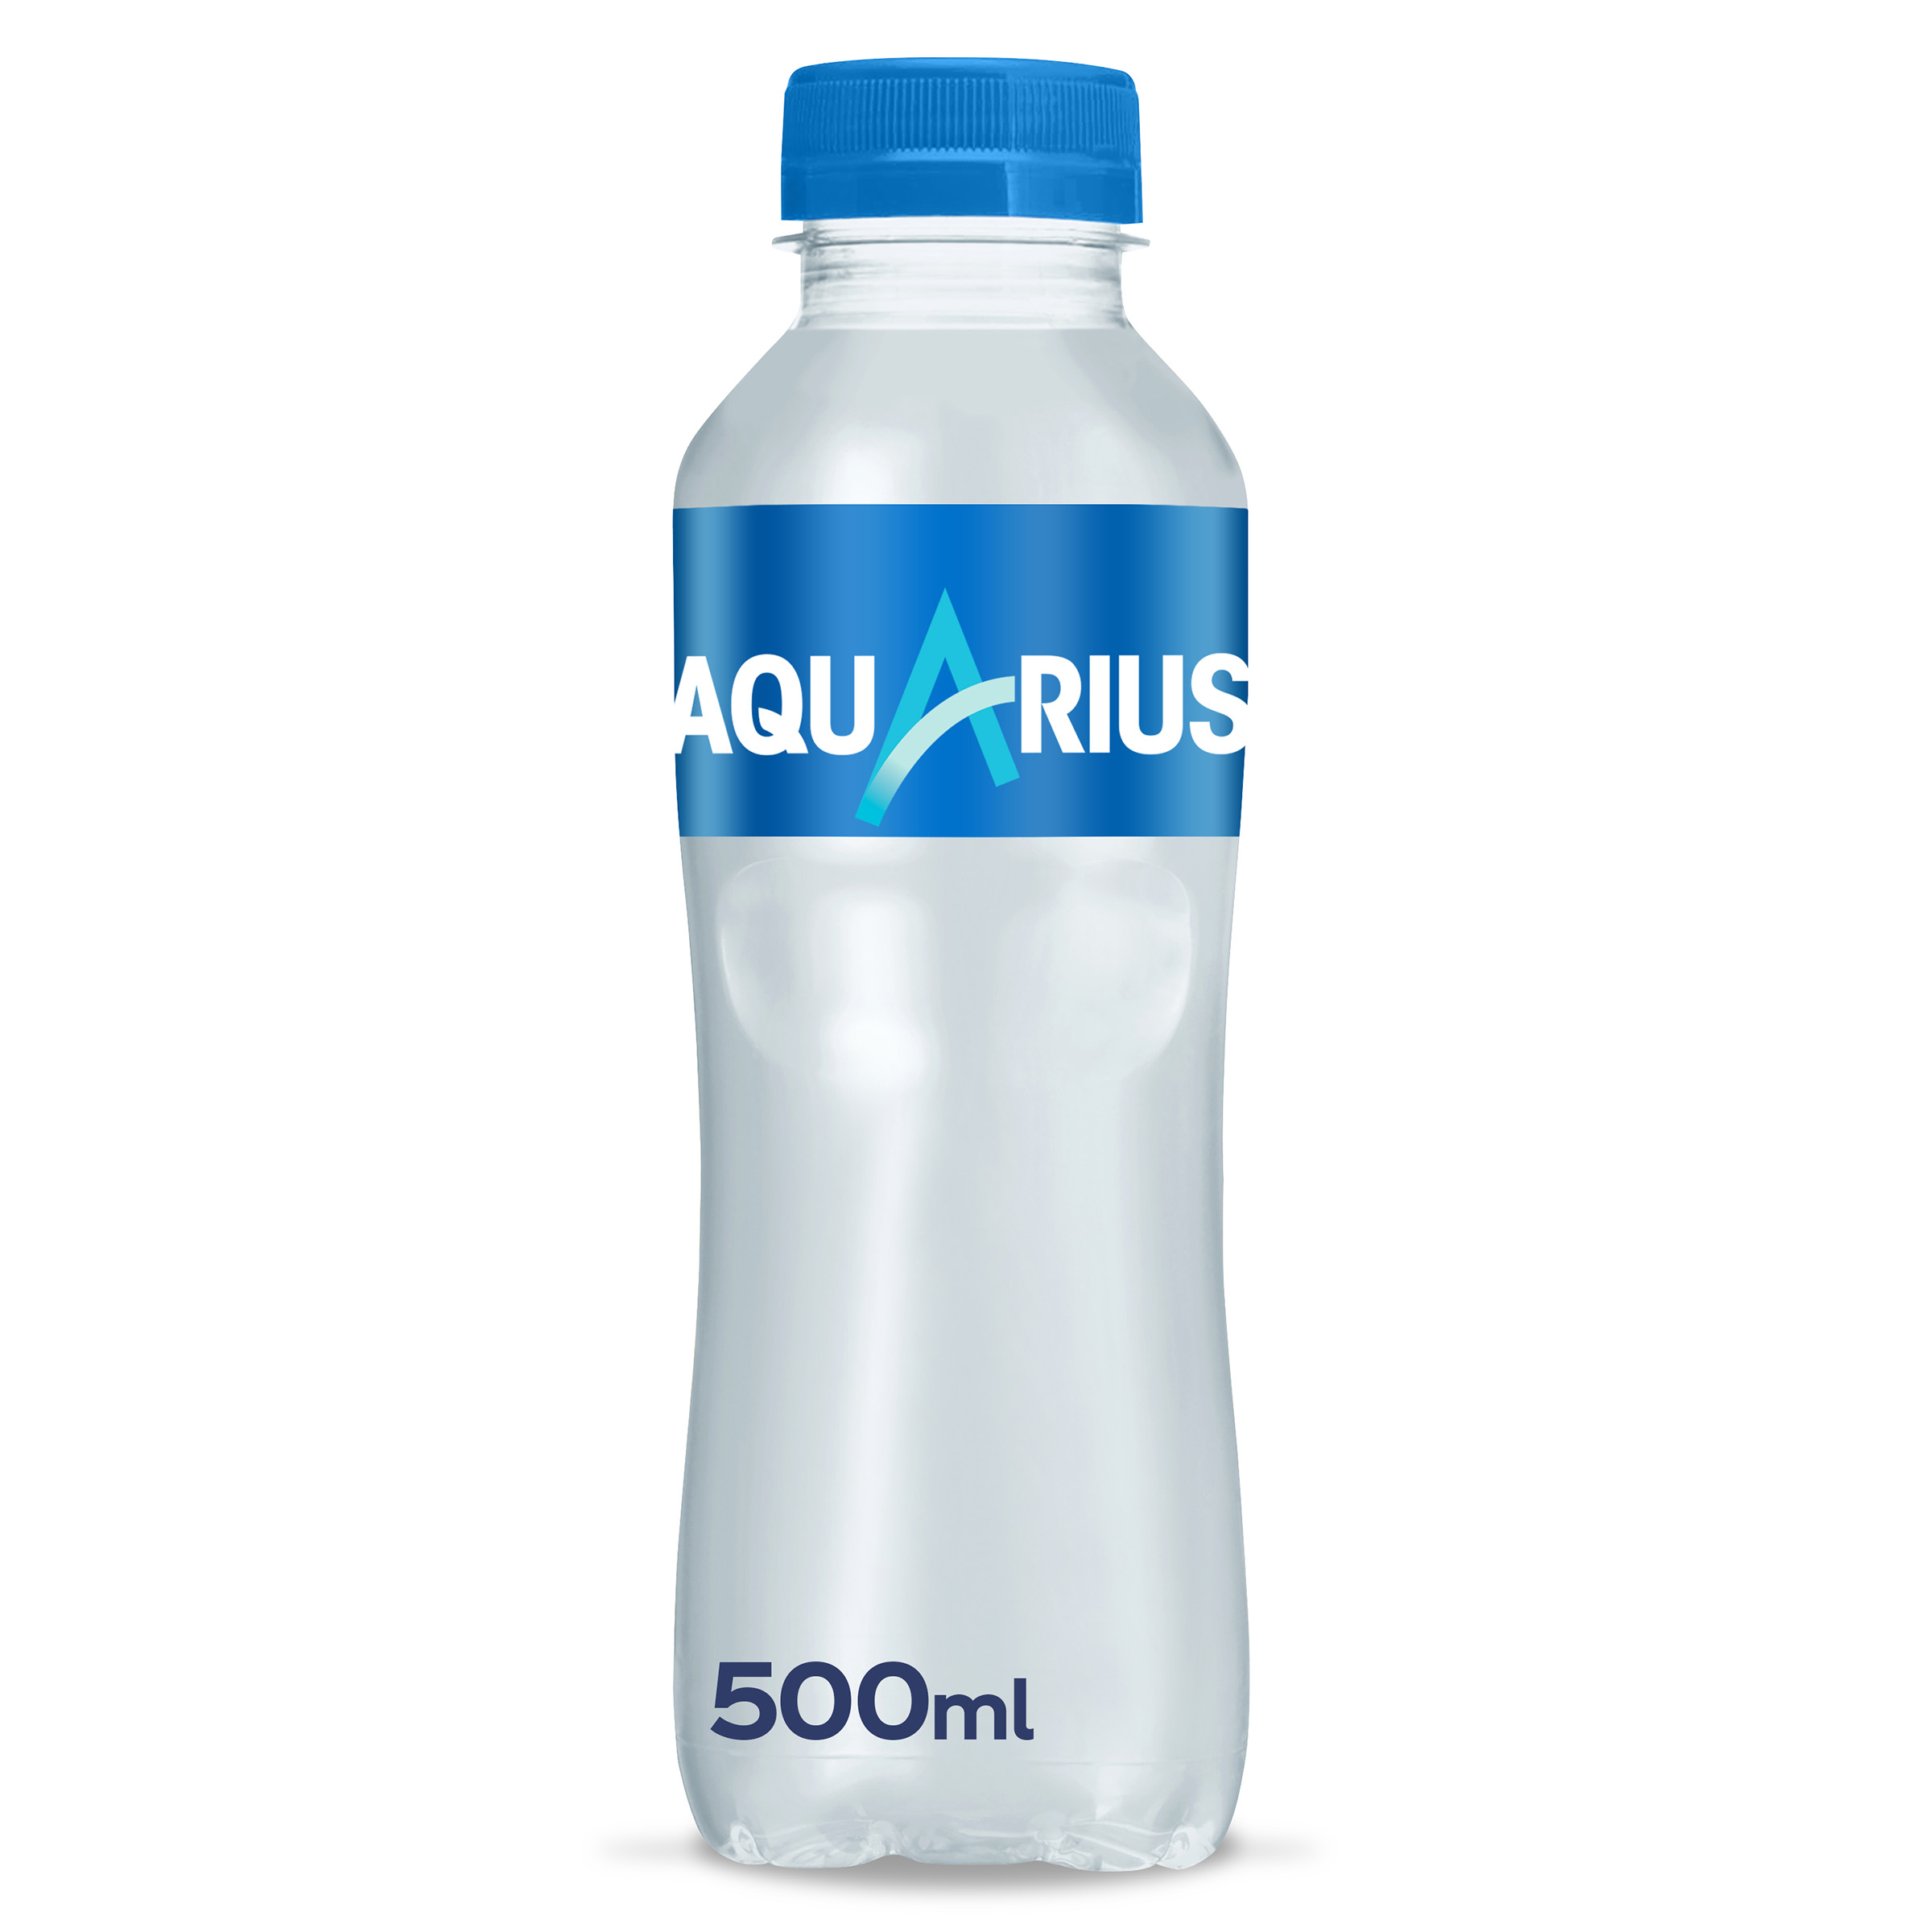 Aquarius refresco limon de 50cl. en botella